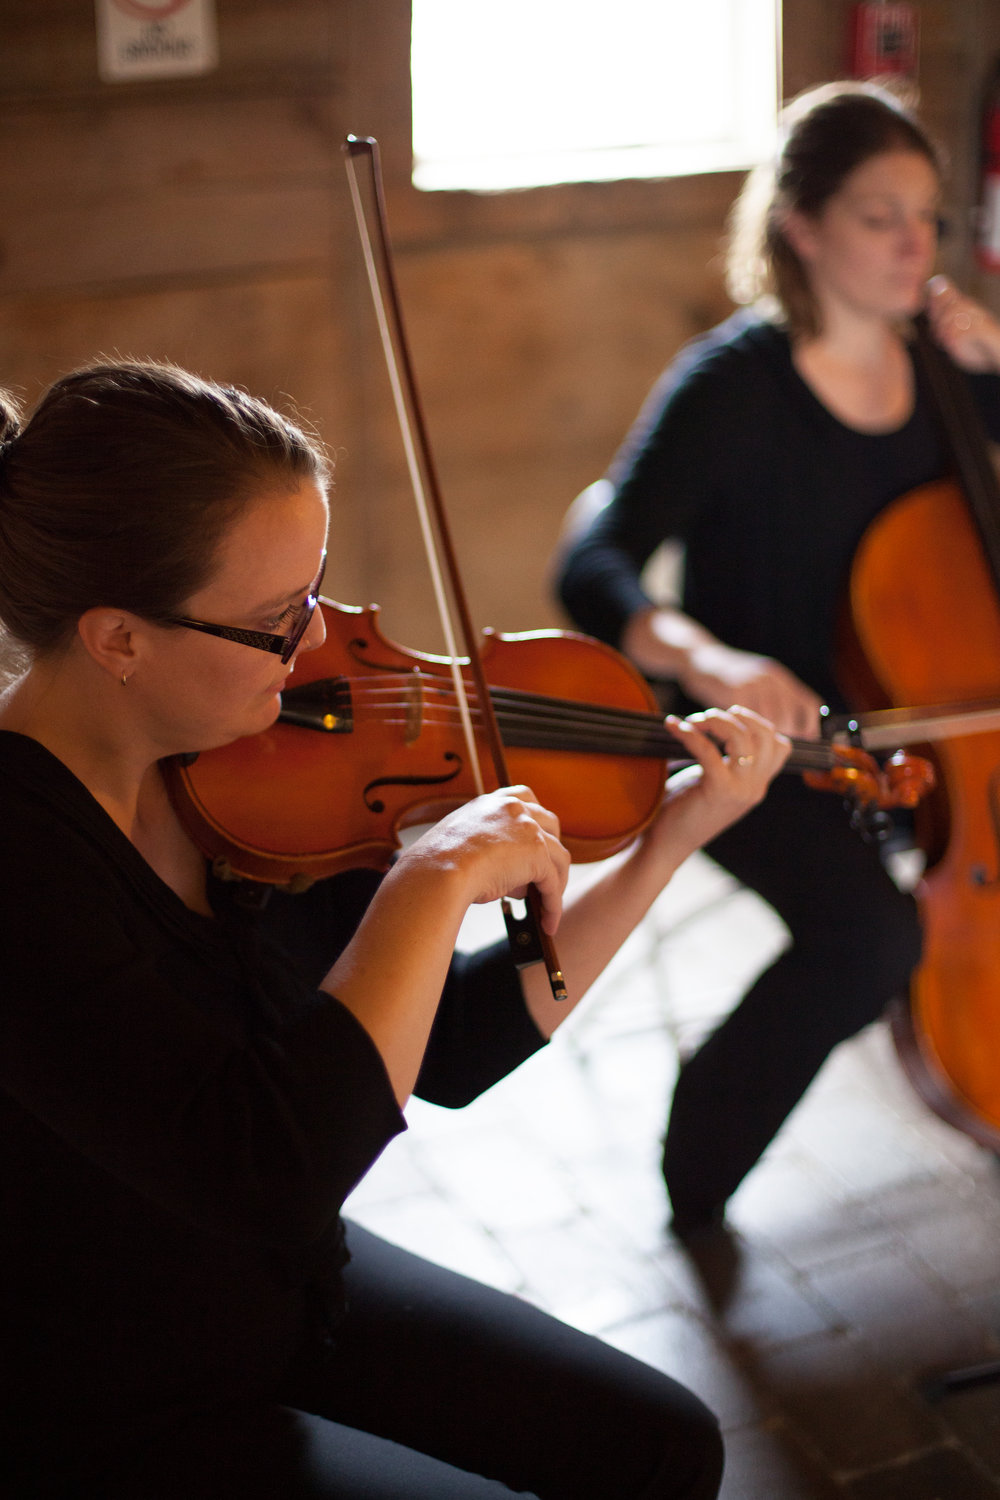 White Pines Entertainment string duet performance captured by Jen at  Bullinger Photography